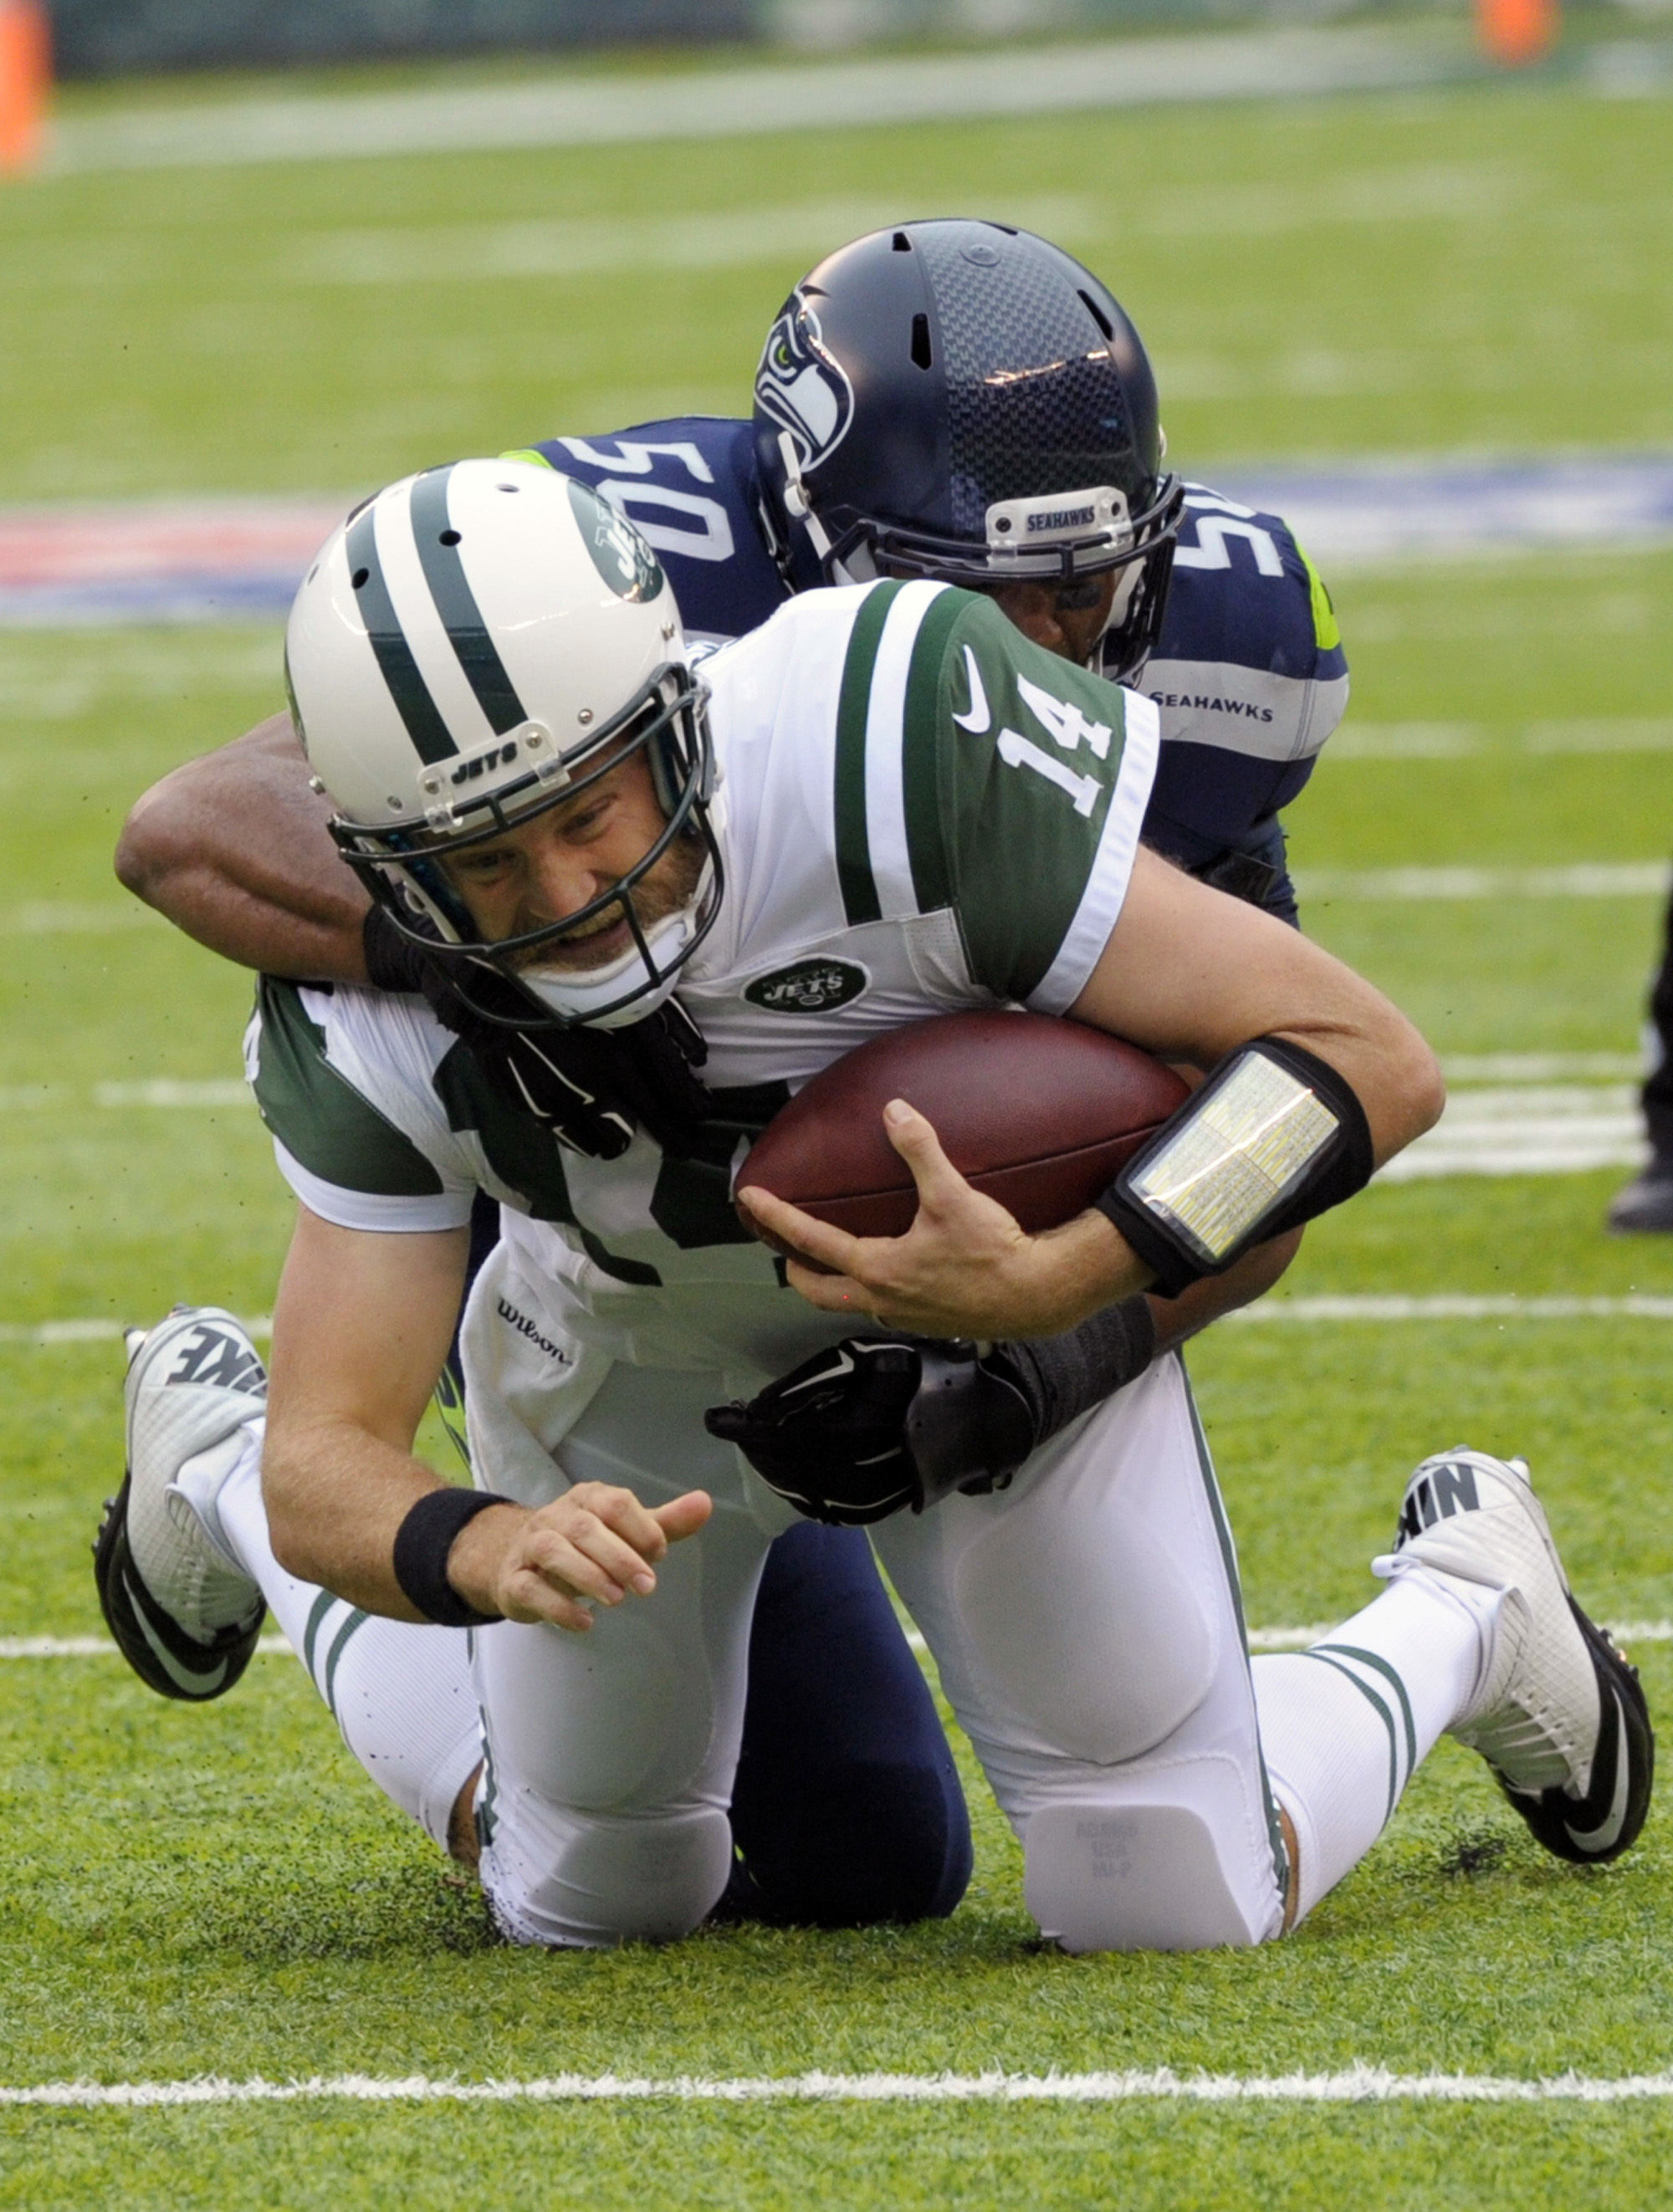 New York Jets quarterback Ryan Fitzpatrick (14) is tackled by Seattle Seahawks' K.J. Wright (50) during the first half of an NFL football game Sunday, Oct. 2, 2016, in East Rutherford, N.J.  (AP Photo/Bill Kostroun)